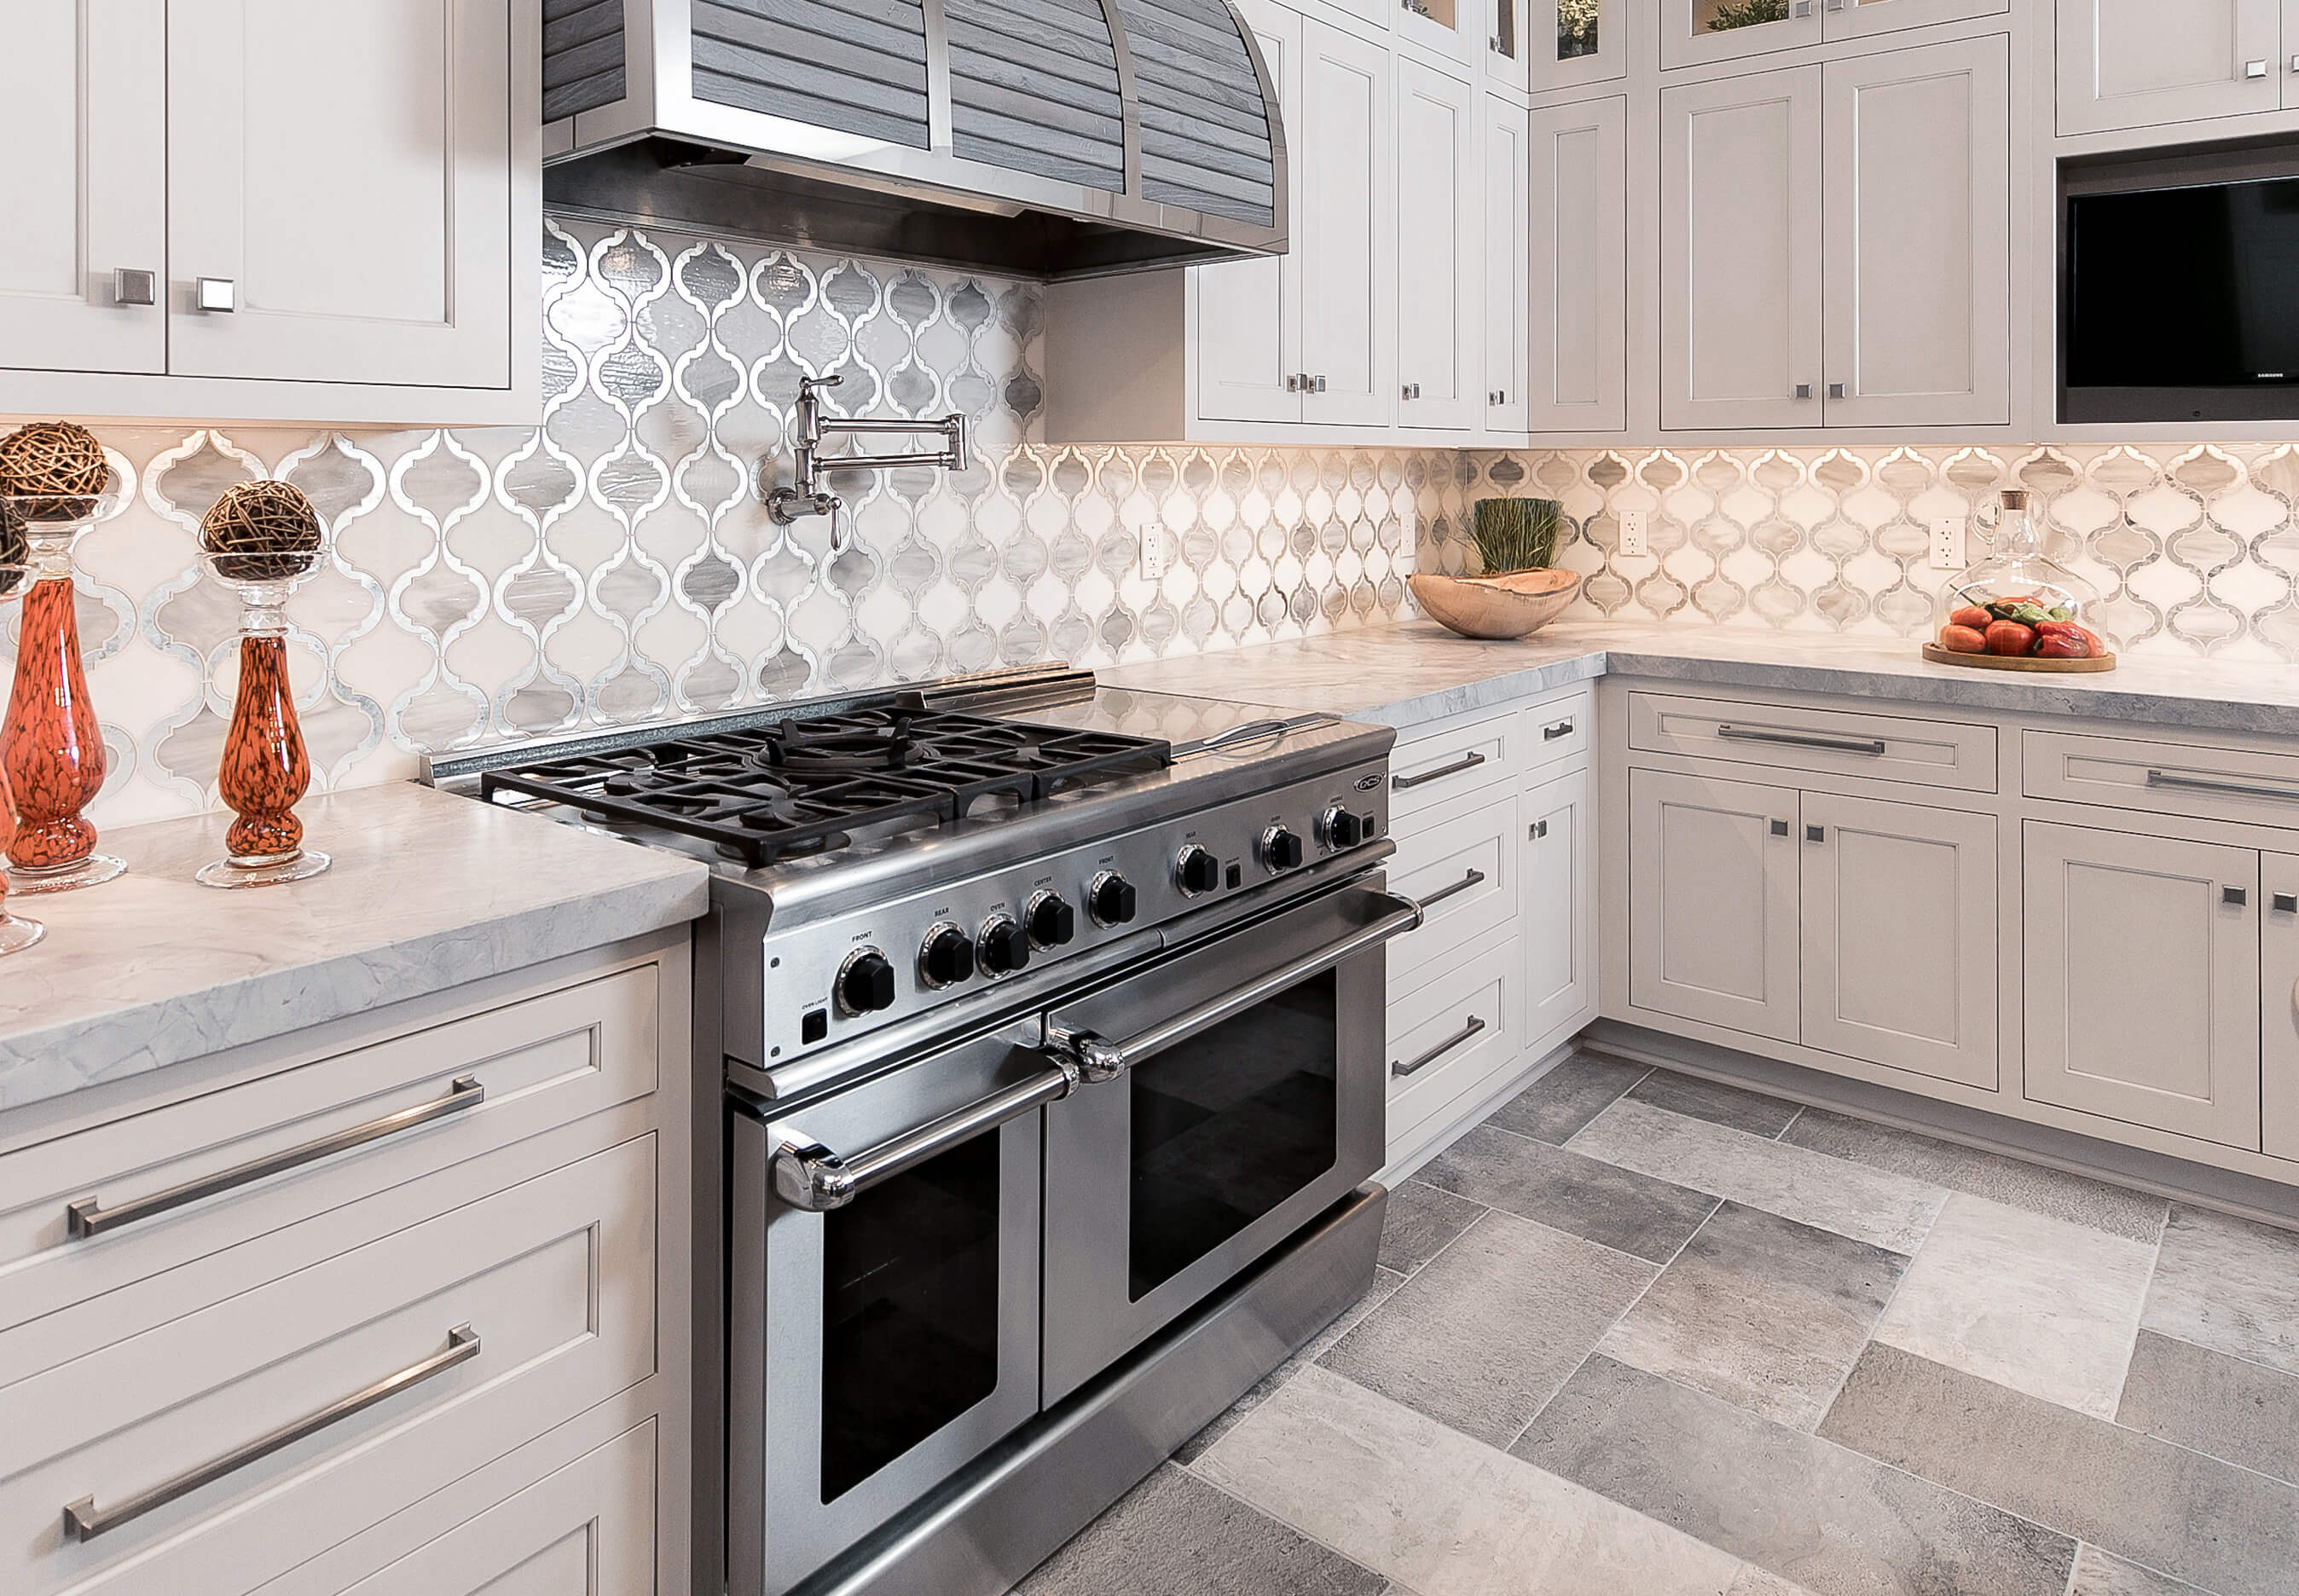 Dura Supreme kitchen featuring a range with dual ovens. Design by Mariotti Building Products, Pennsylvania. Photography by Danielle Coons.